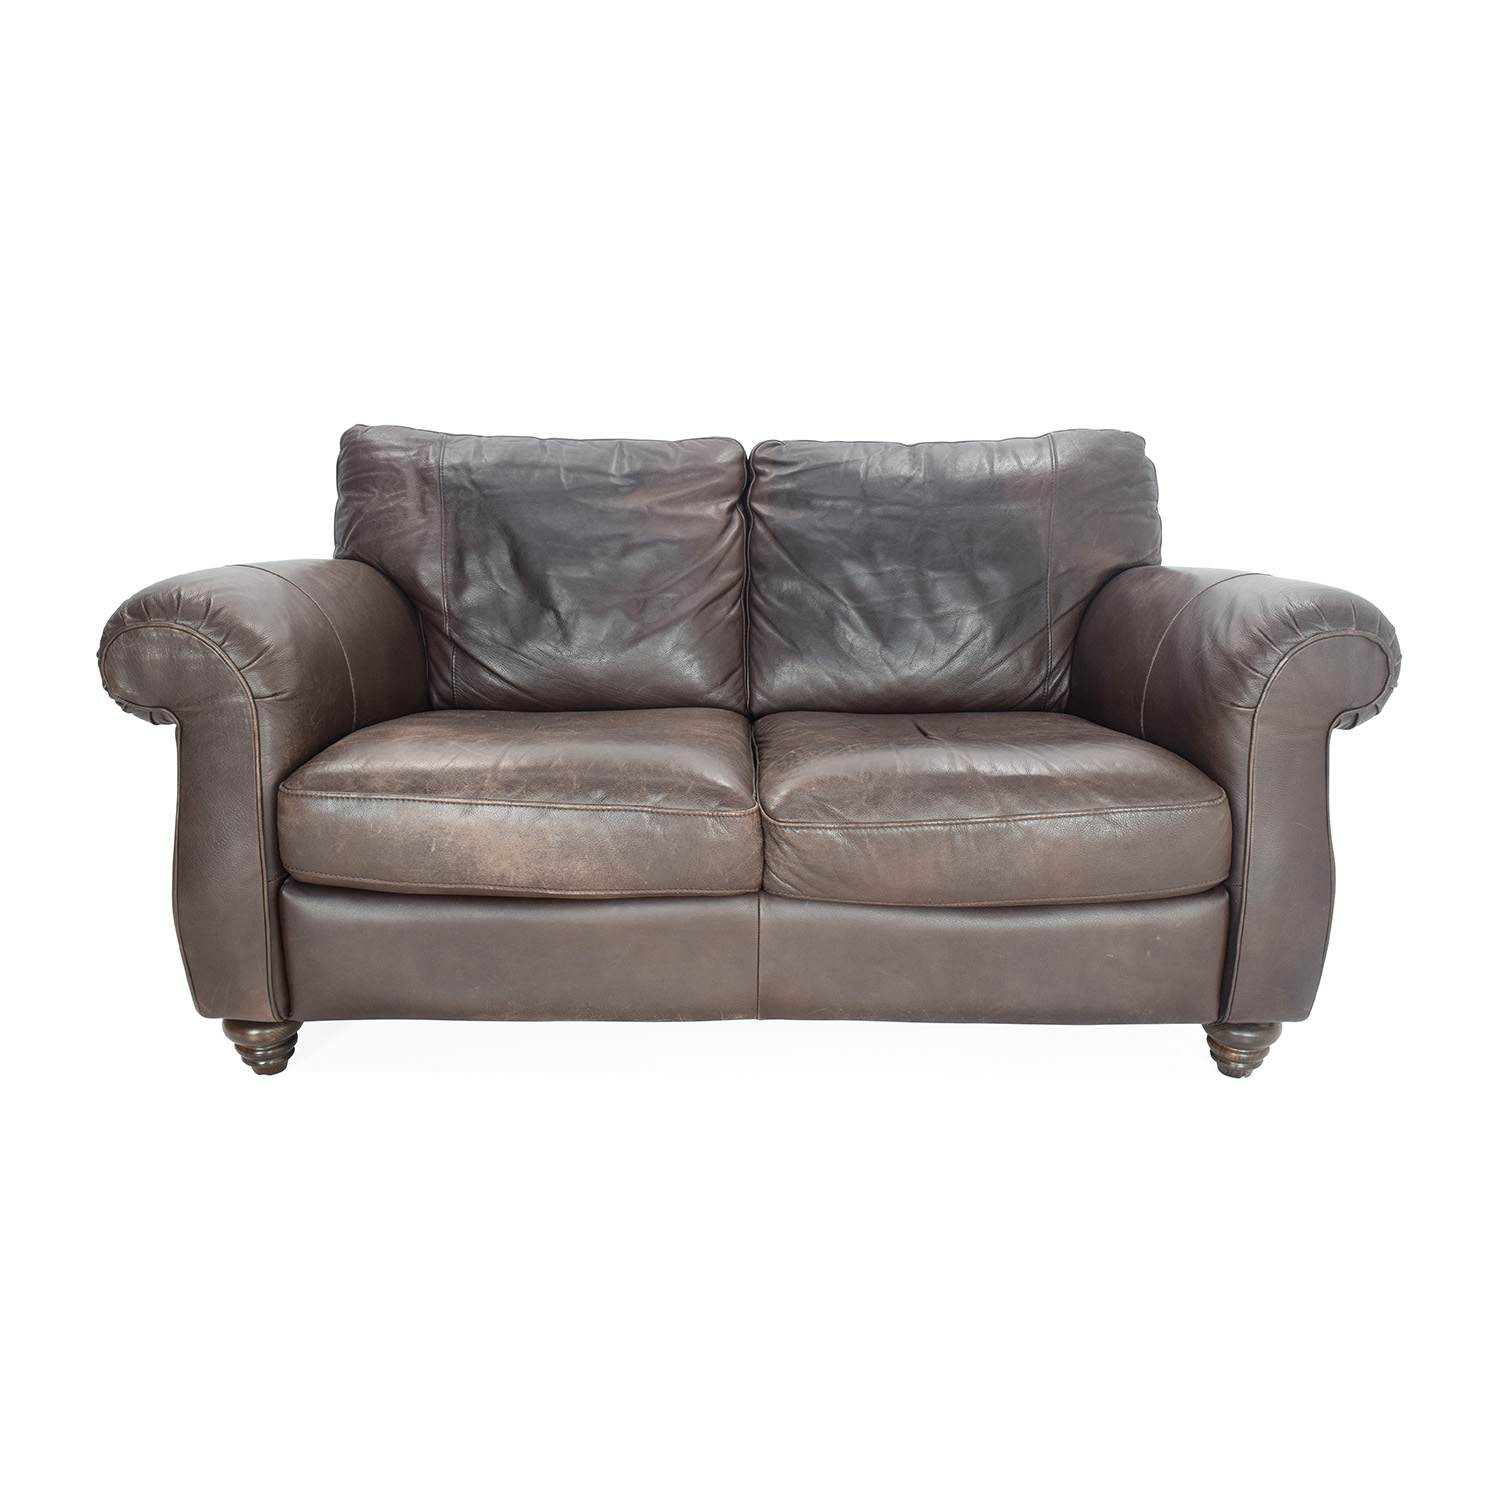 tan leather sofa and loveseat jacobean brown loveseats home ideas